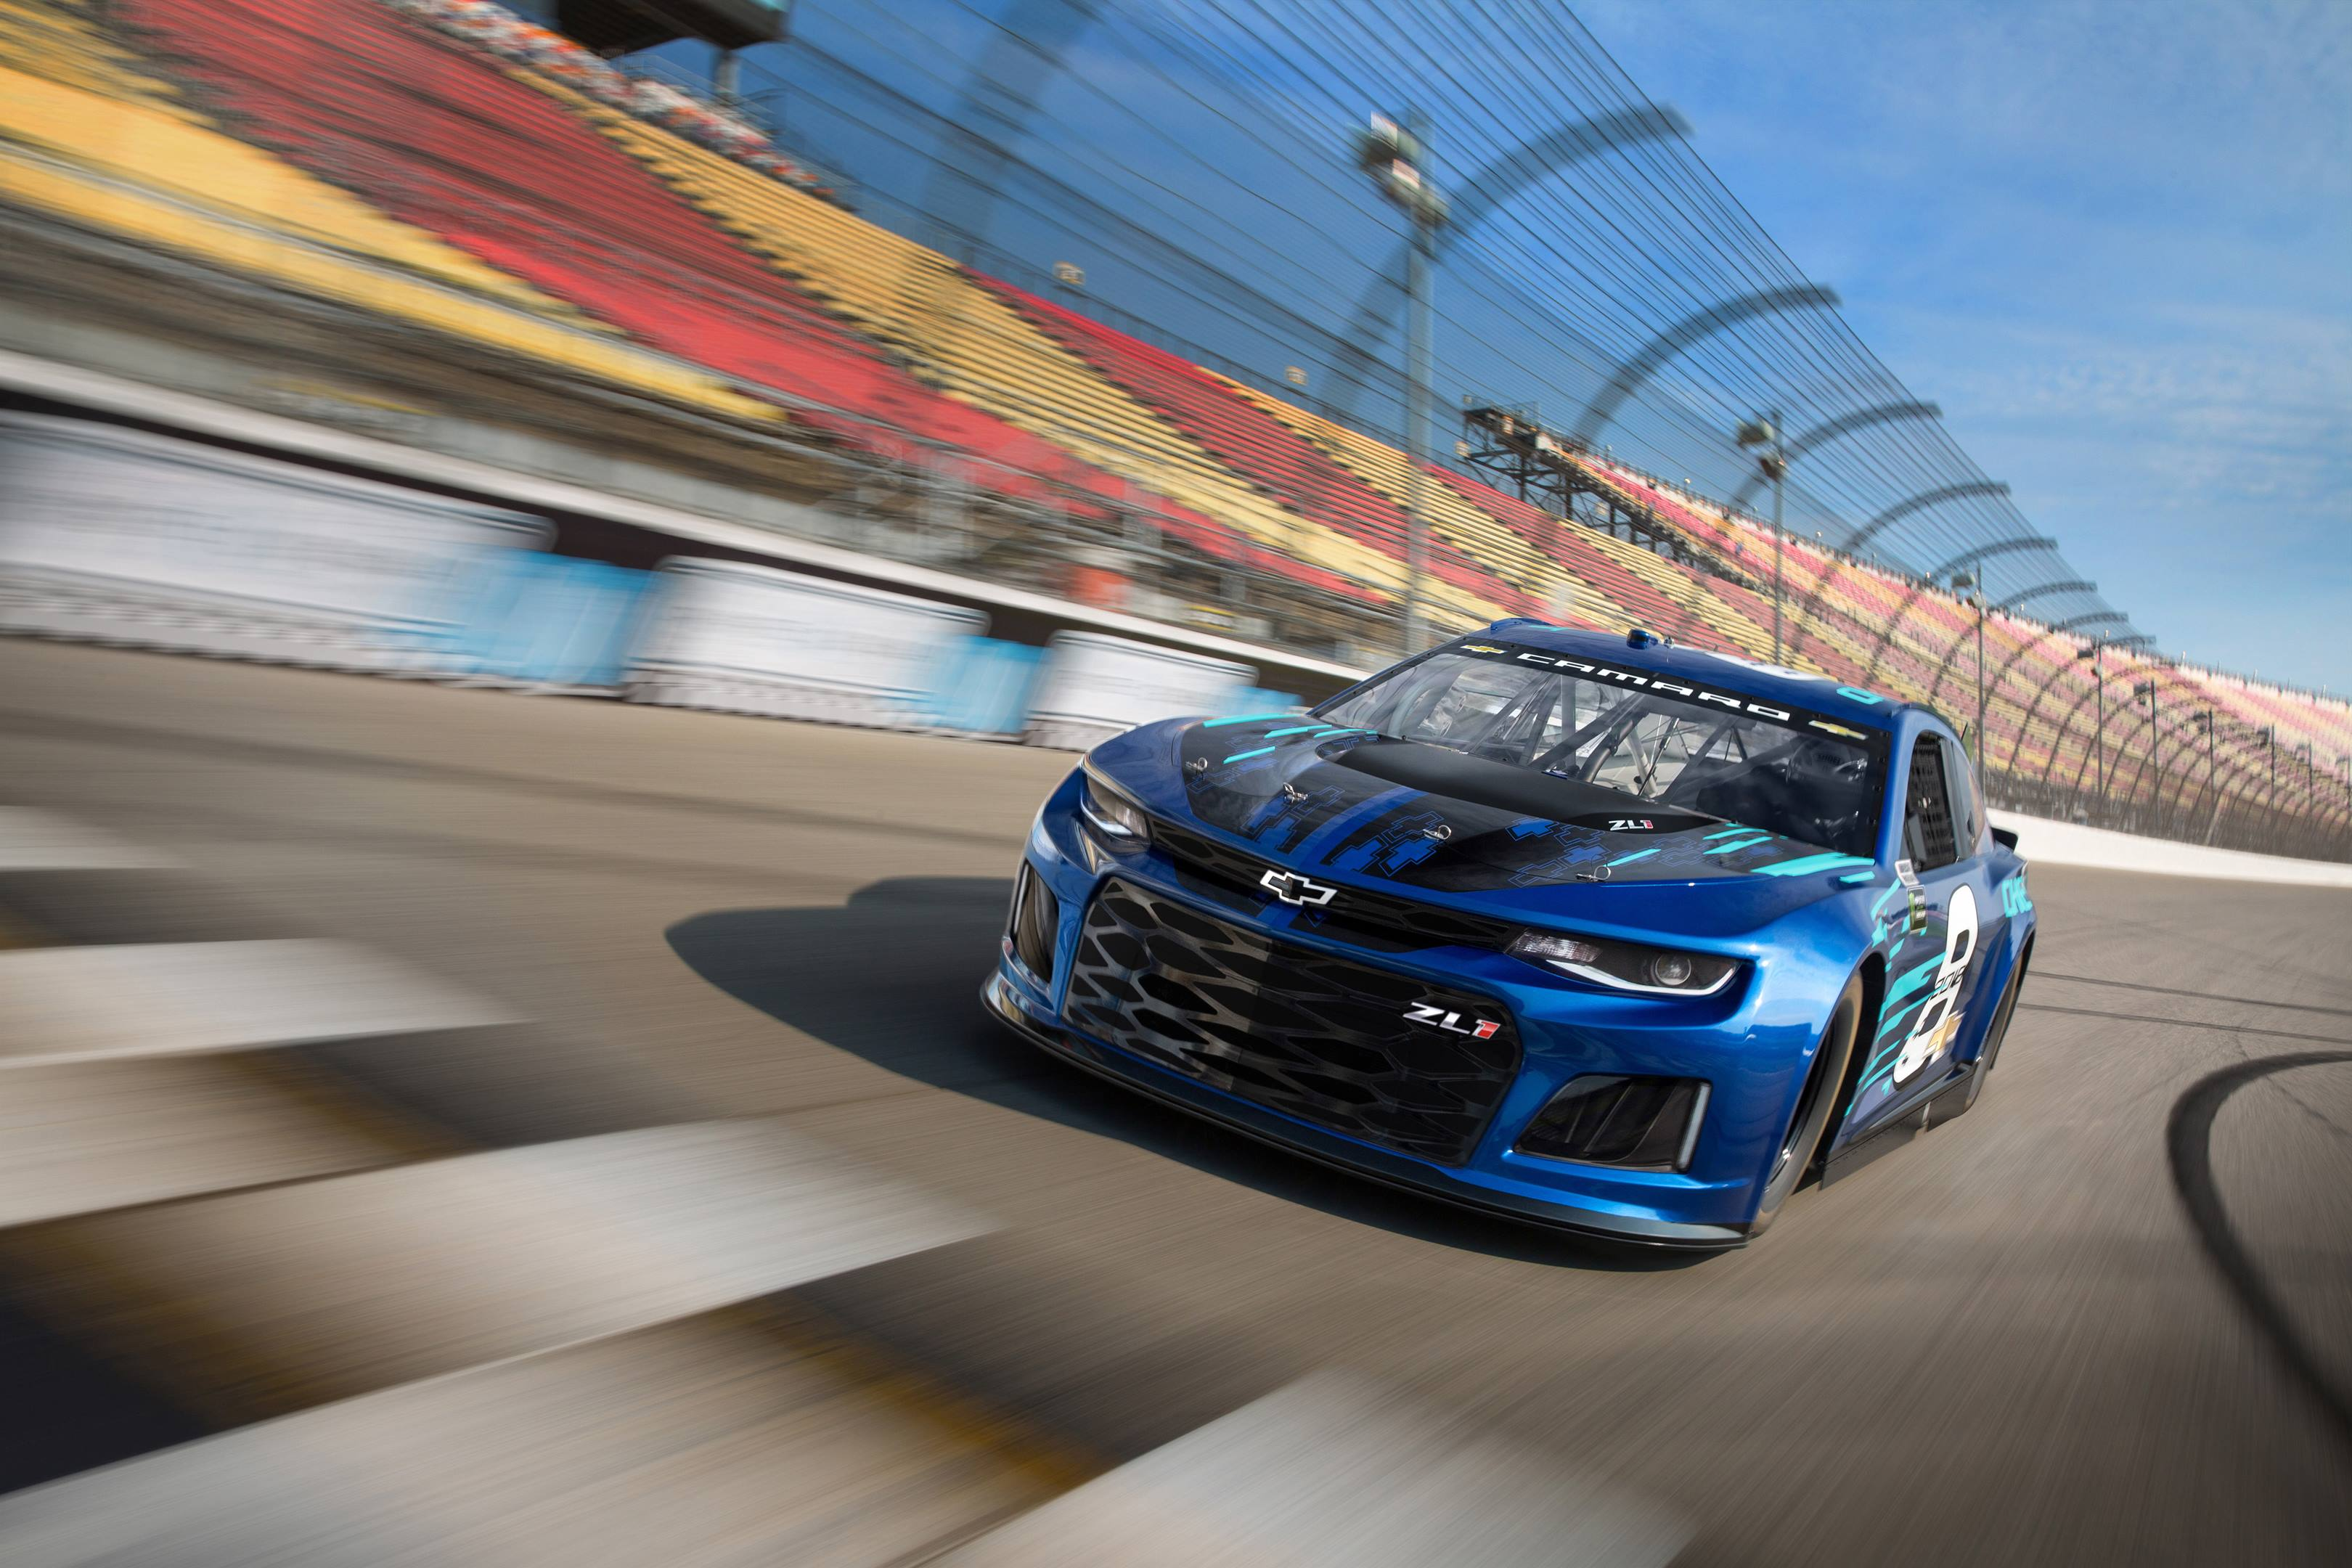 2018 Chevrolet Camaro ZL1 NASCAR cup race car on the track